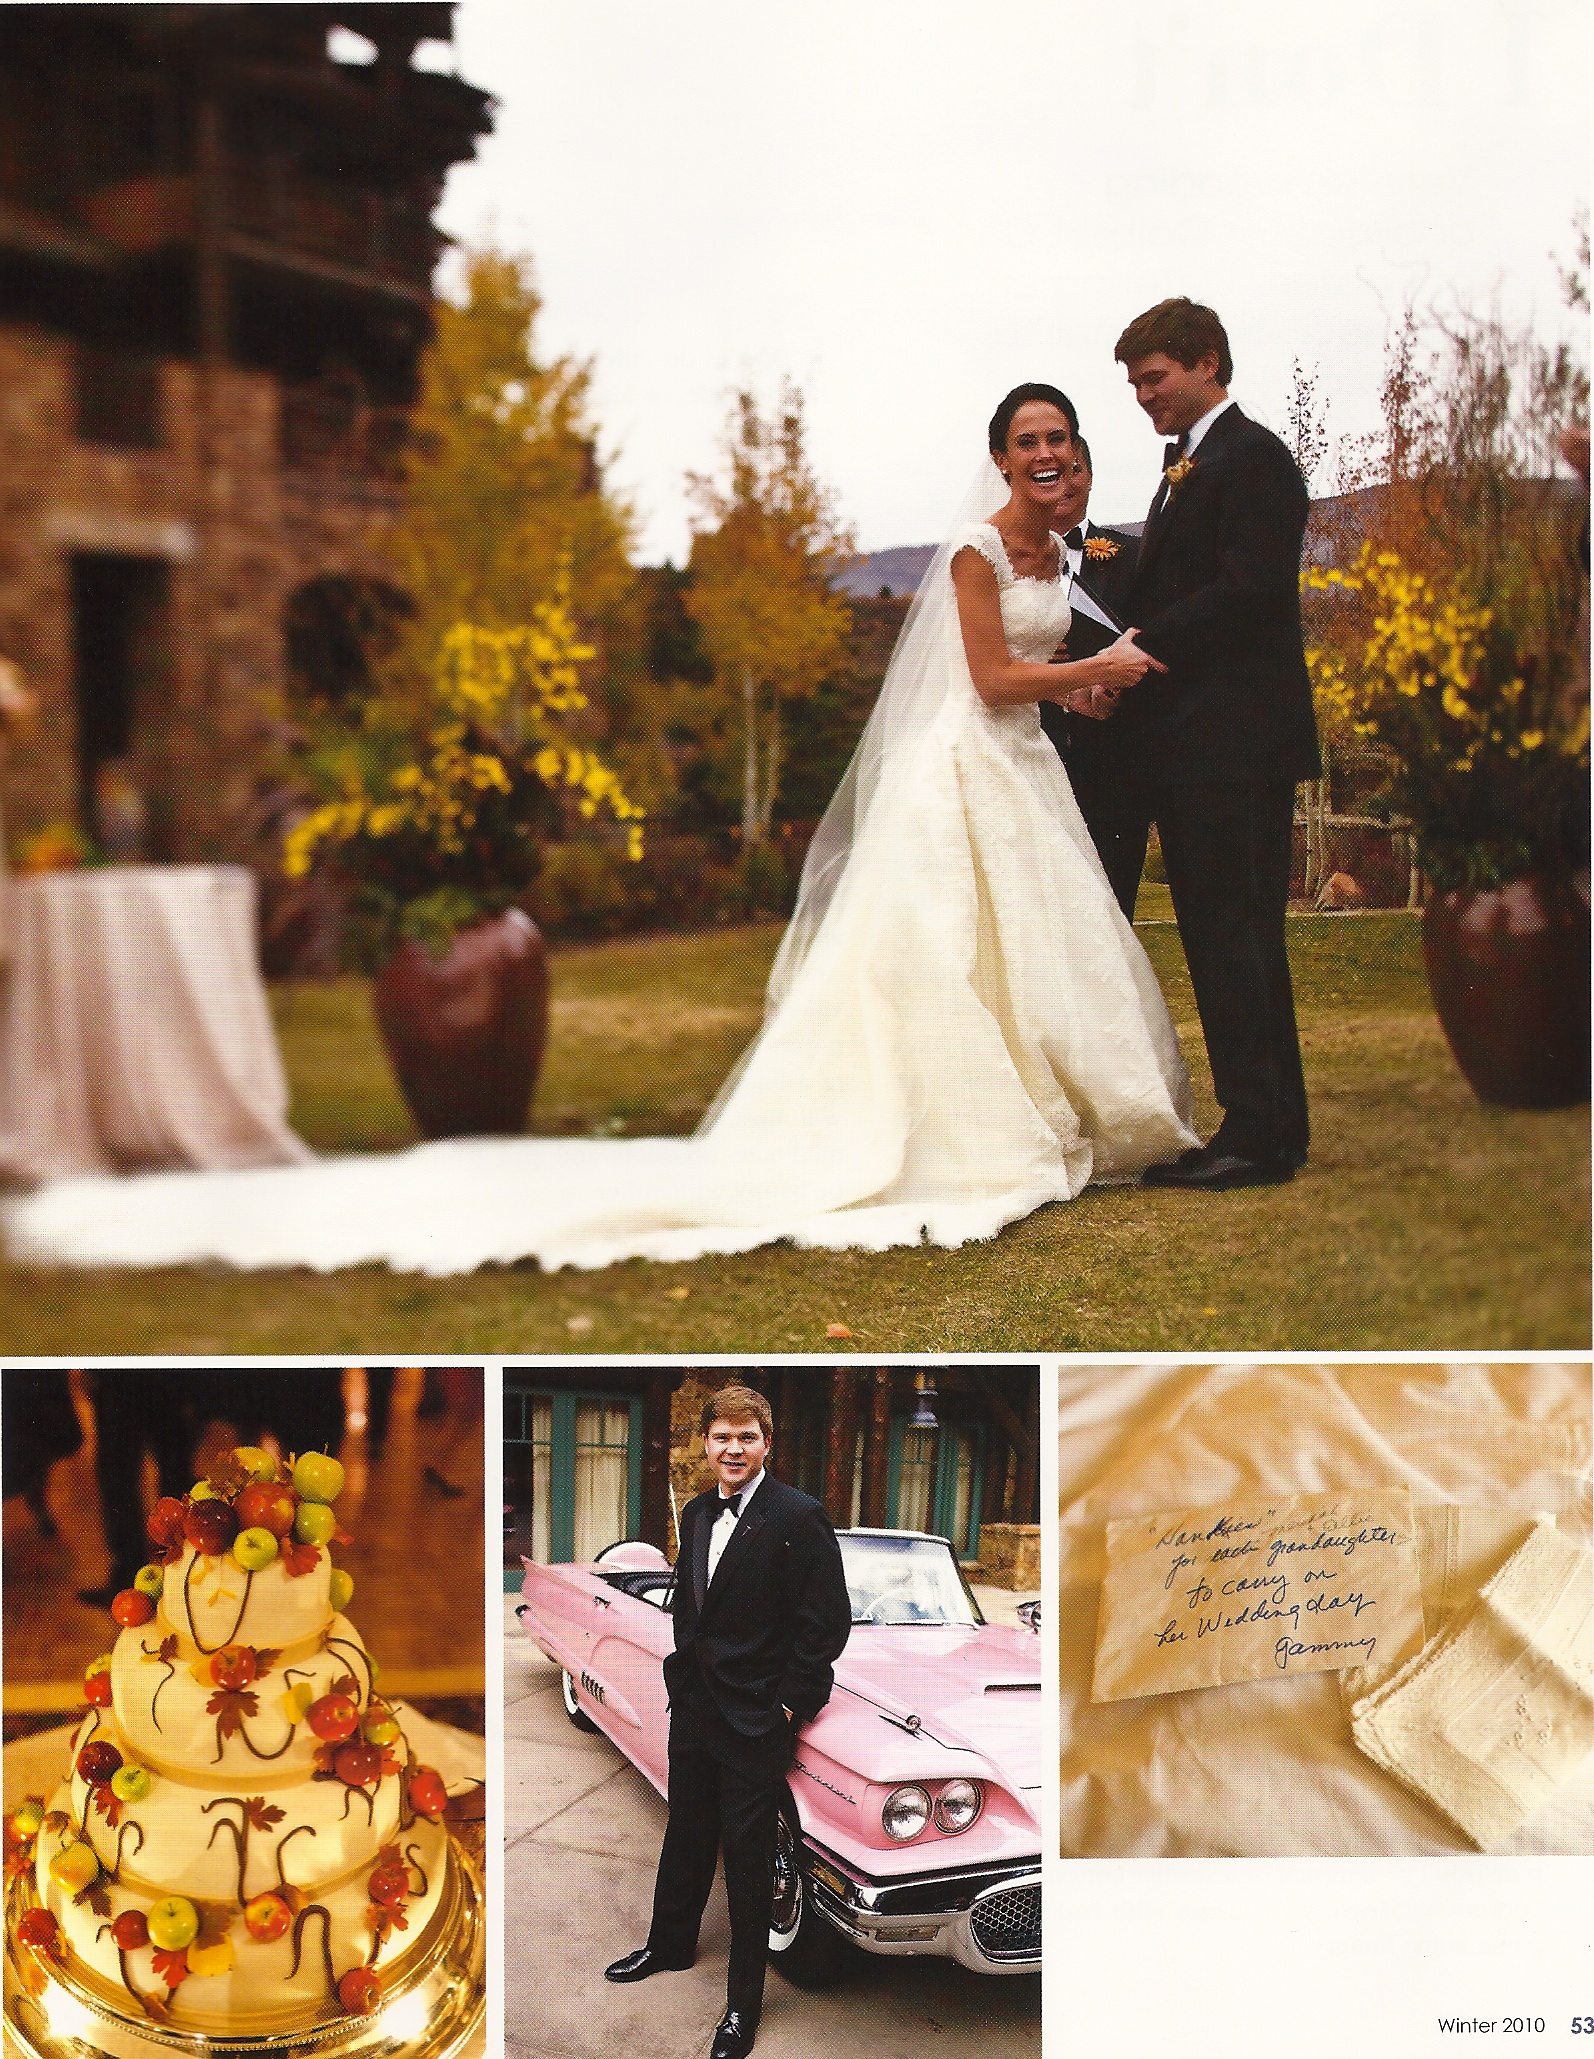 Wedding at the Ritz Carlton in Bachelor Gulch Published in the Colorado View